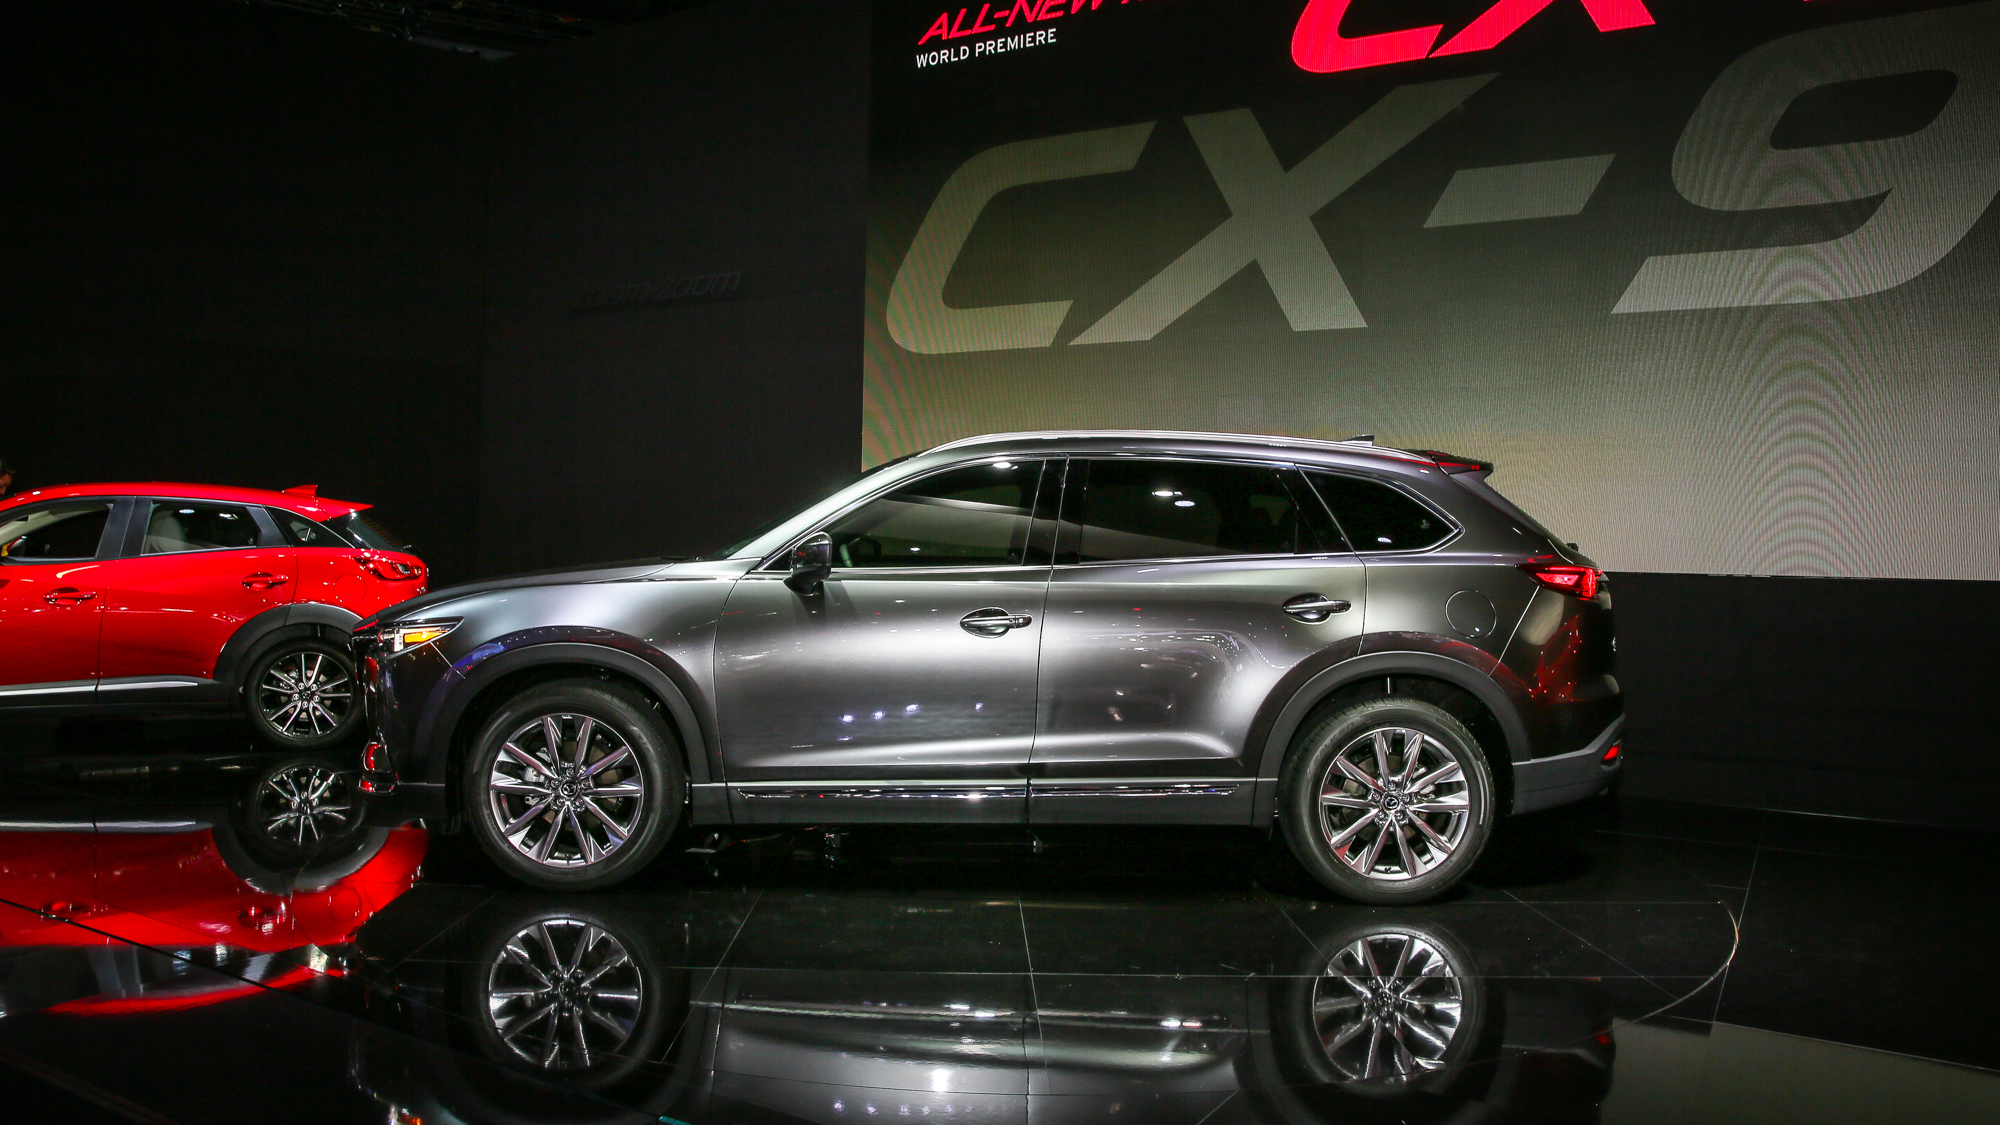 2016 mazda cx 9 release date price and specs cnet. Black Bedroom Furniture Sets. Home Design Ideas